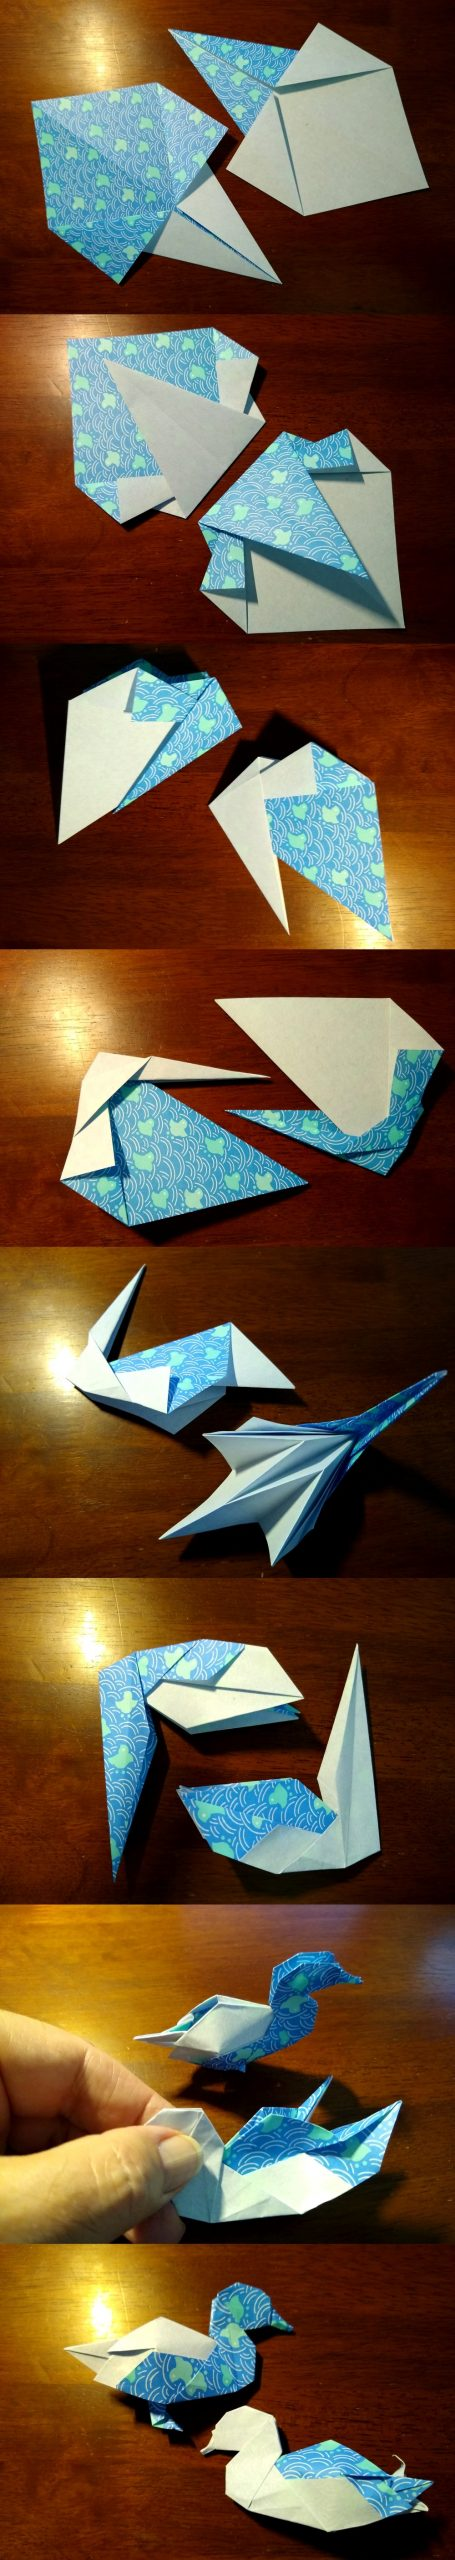 Shiri Daniel's Ducks development